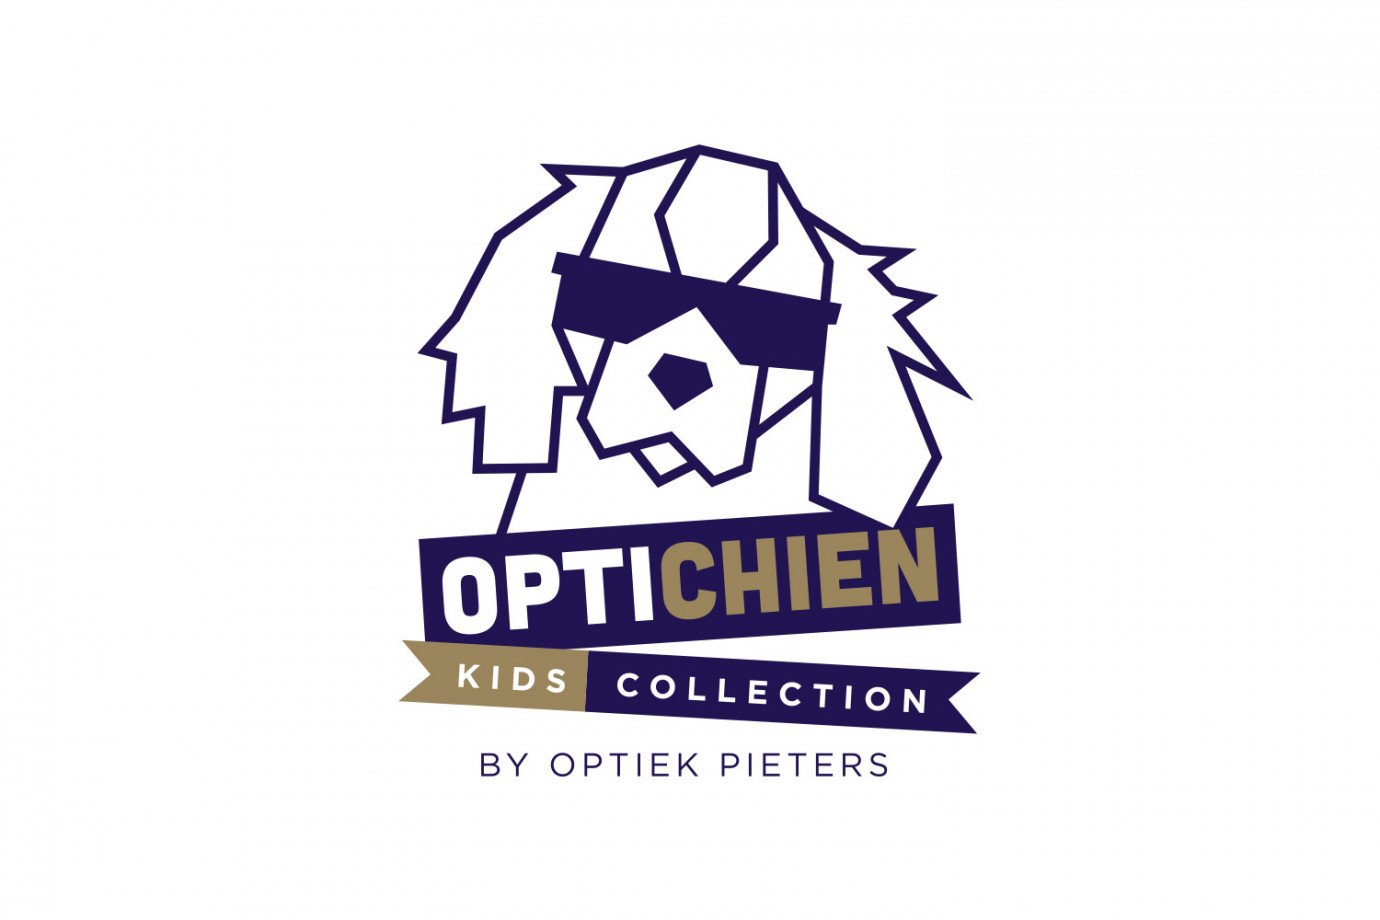 OptichienLogo.jpg